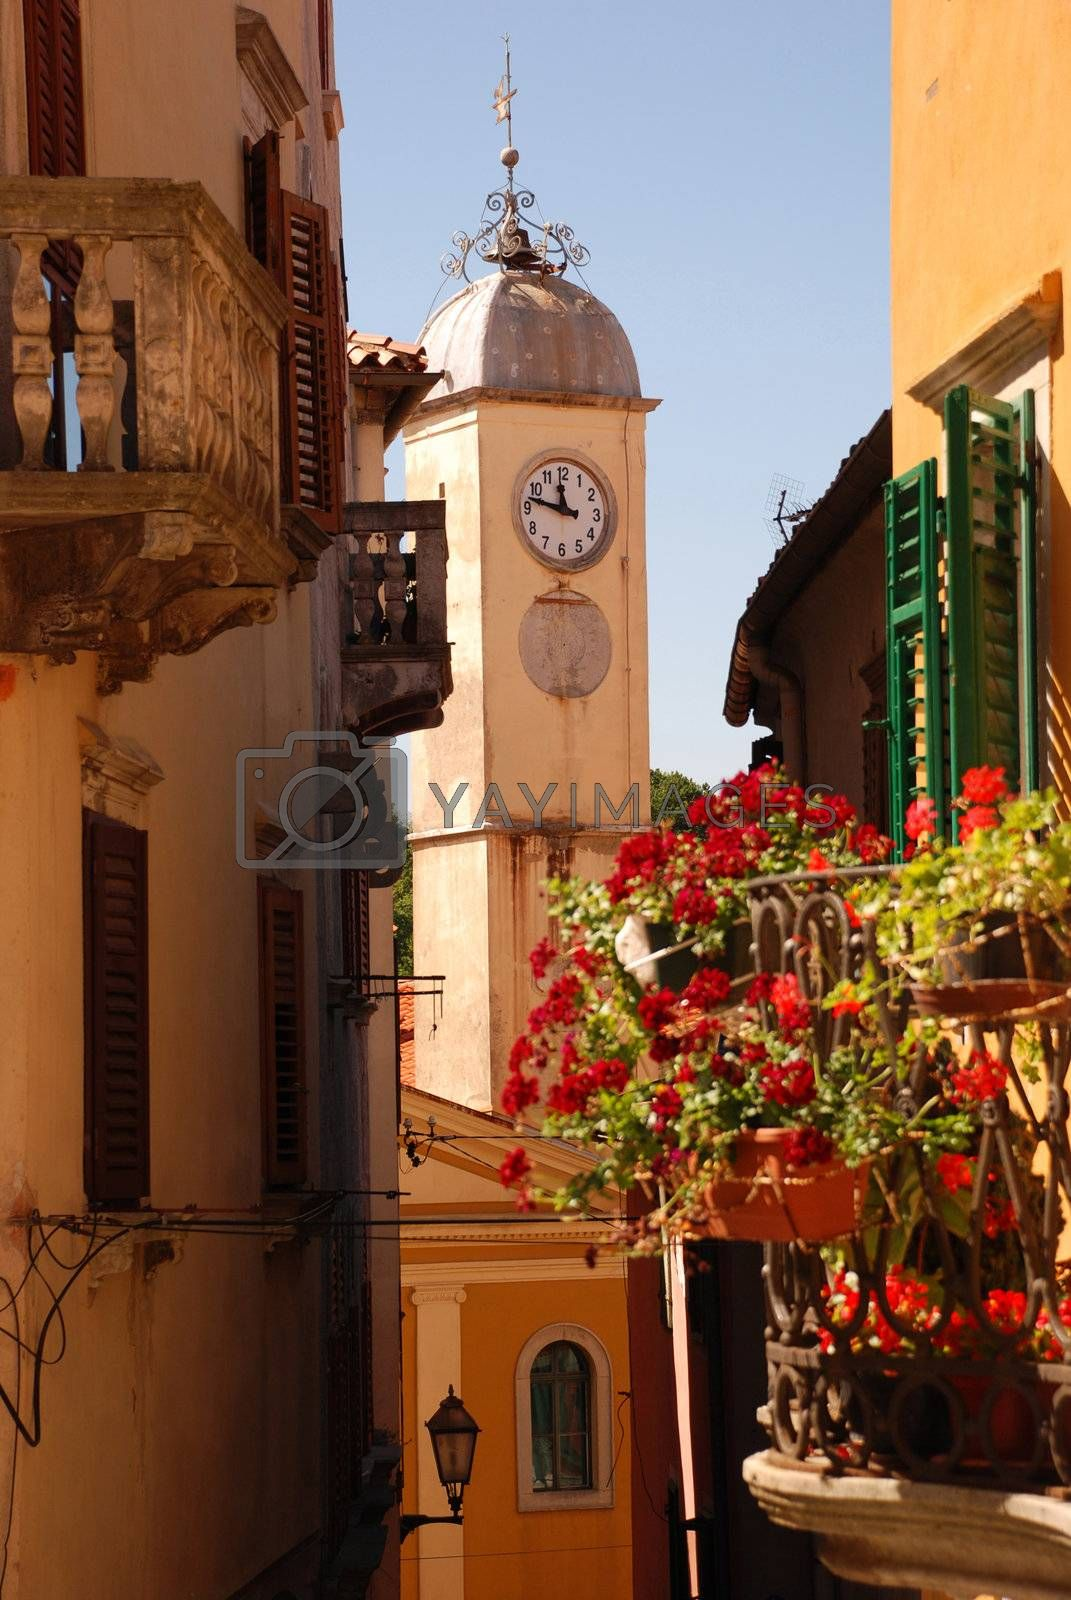 The bell tower in the center of Labin city, Croatia